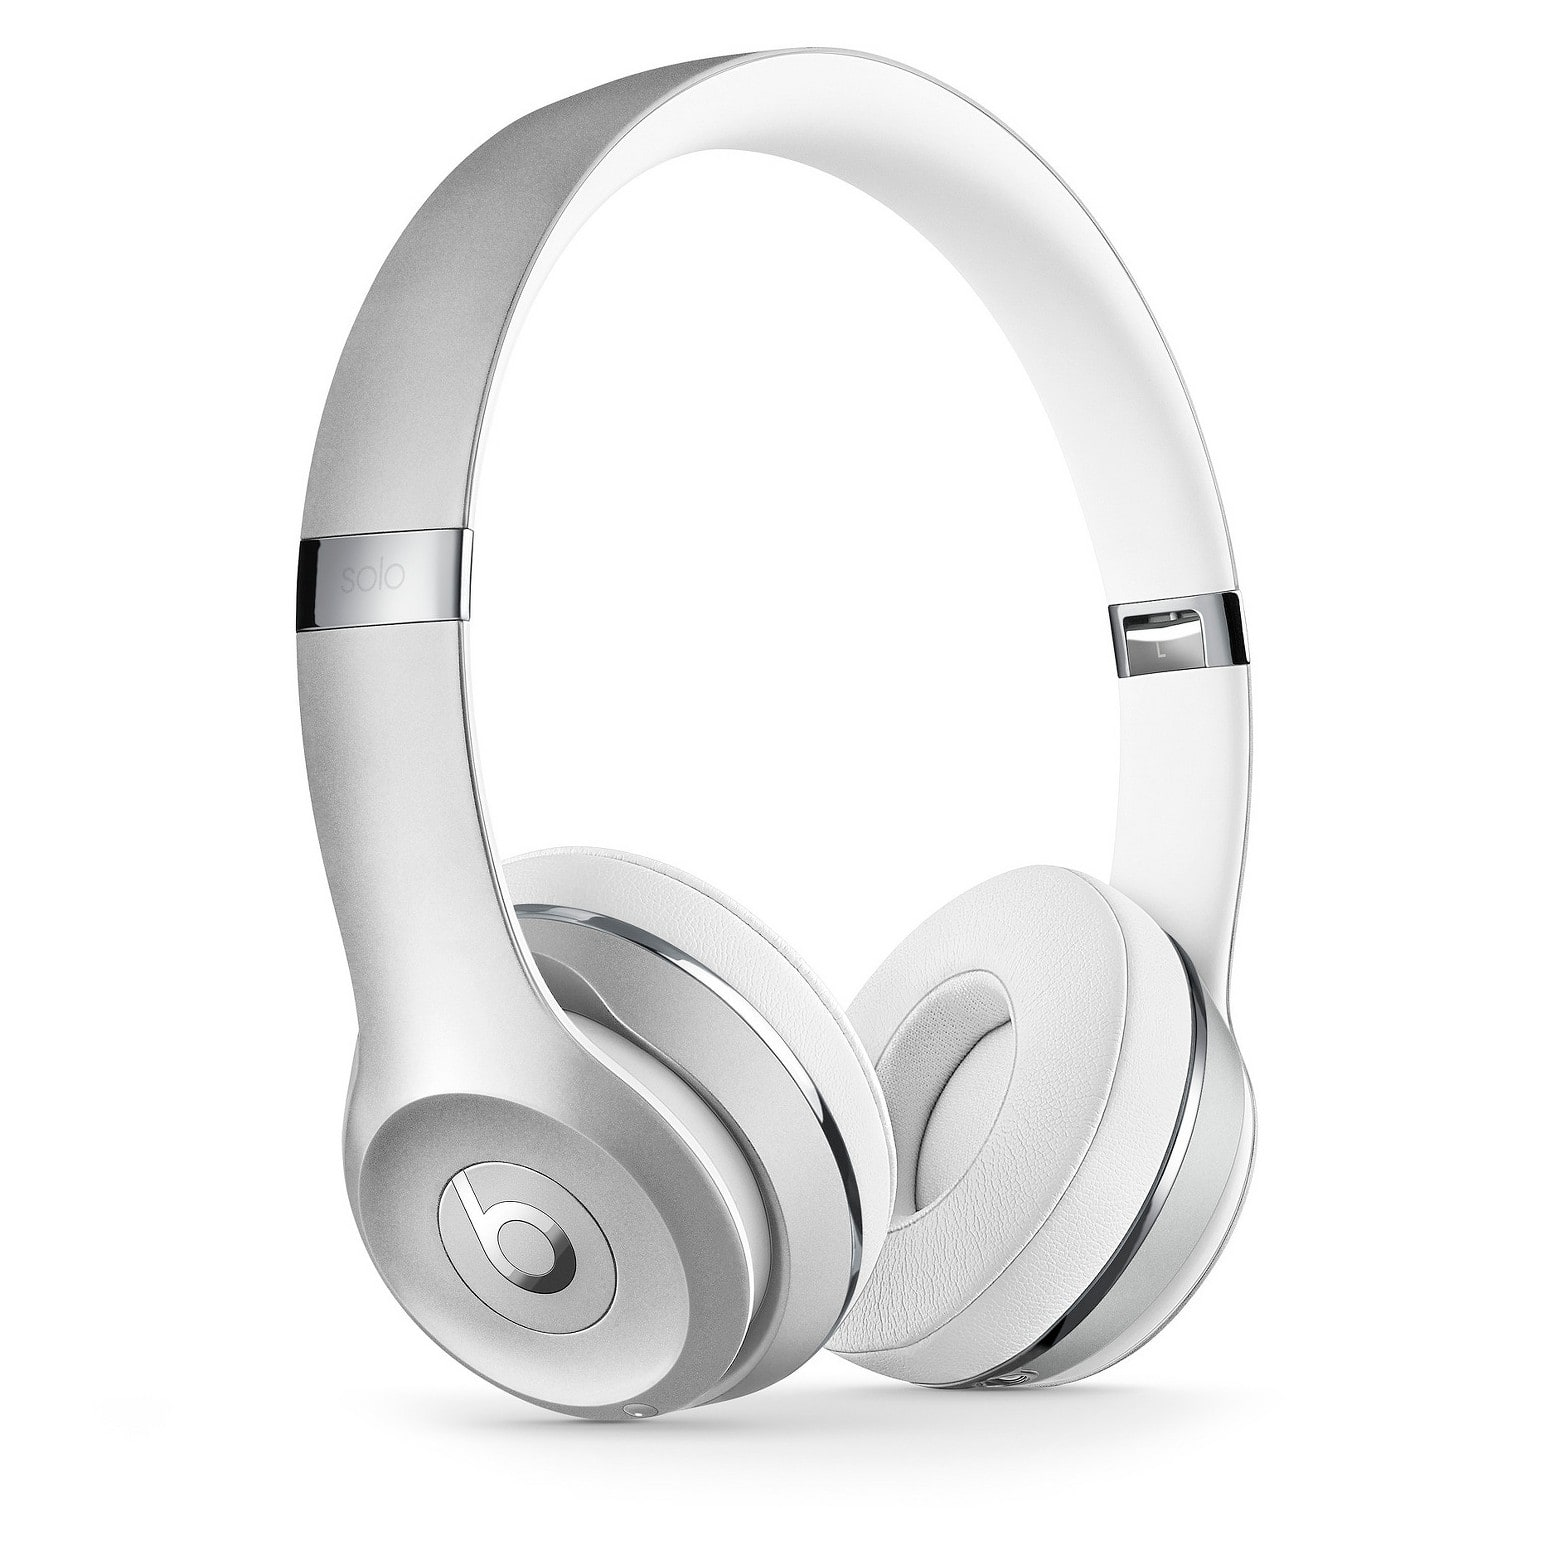 Beats by Dre Solo 3 Wireless Headphones- Multiple Colors  219.00 w/ 60.00 gift card